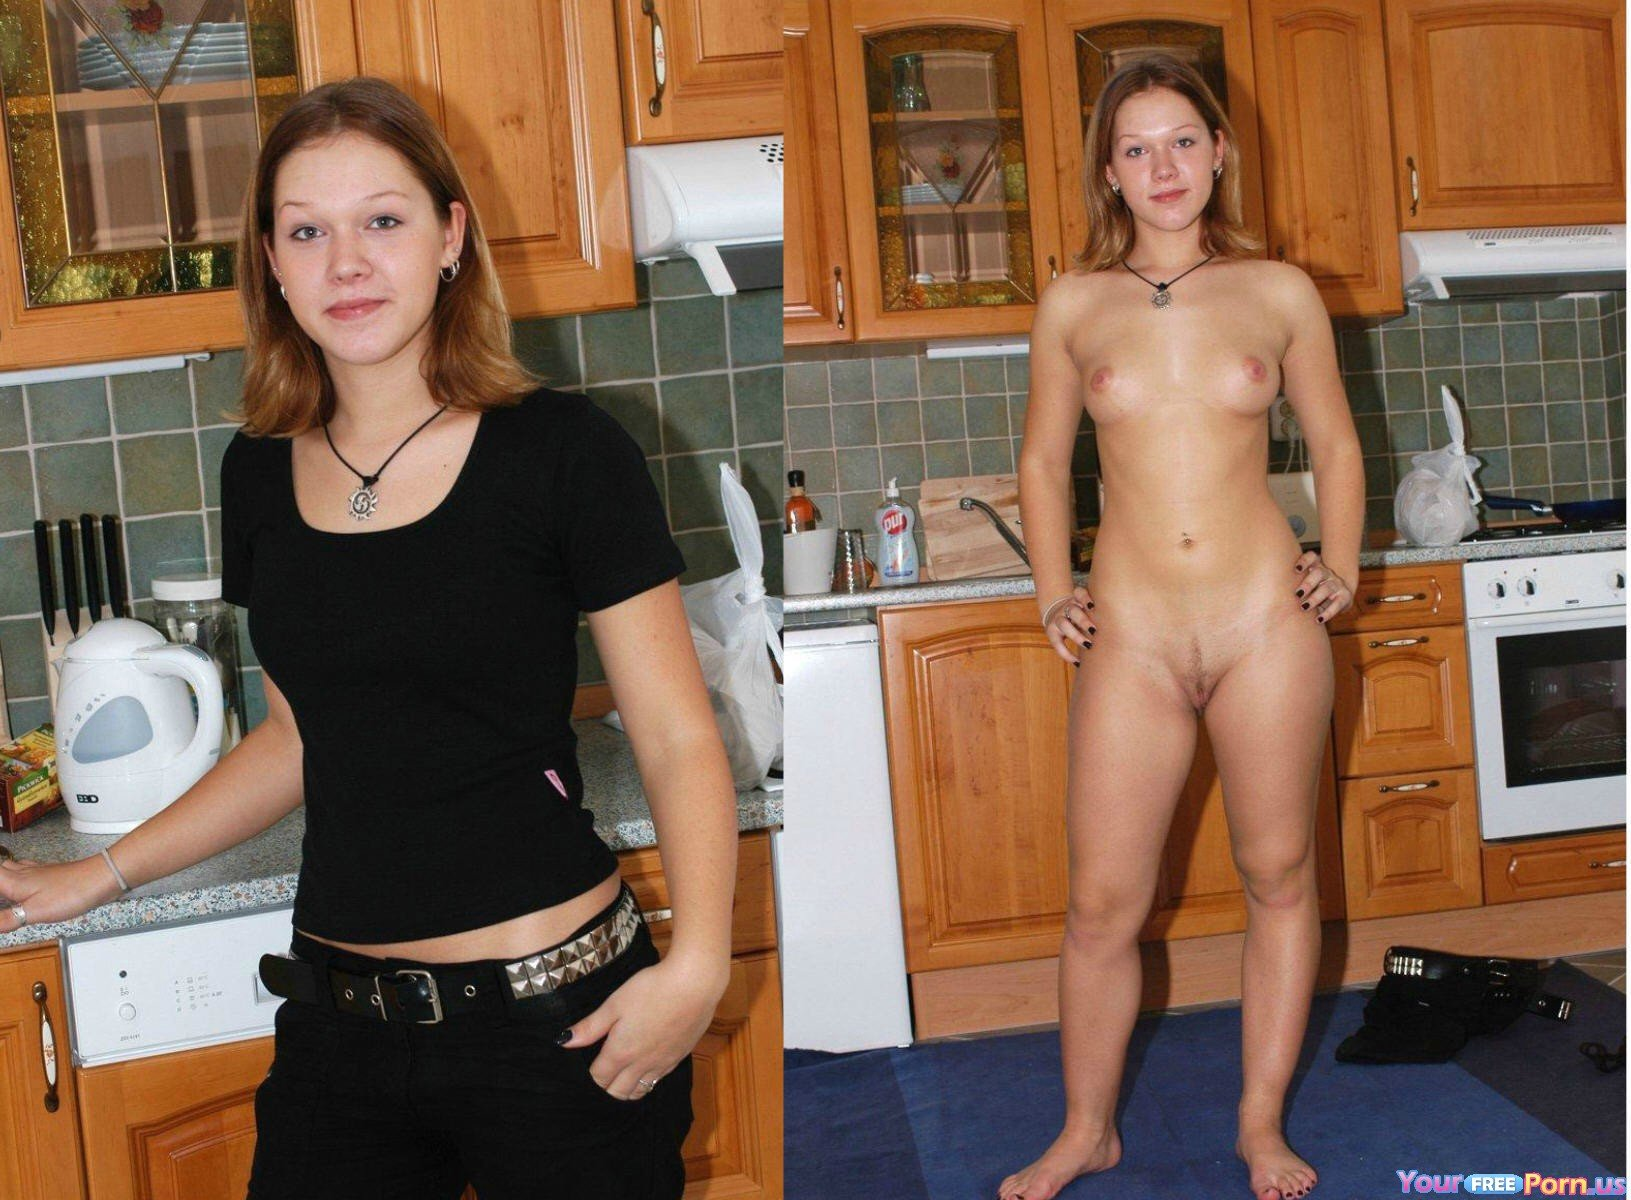 Darelle reccomended nude asian milf pictures